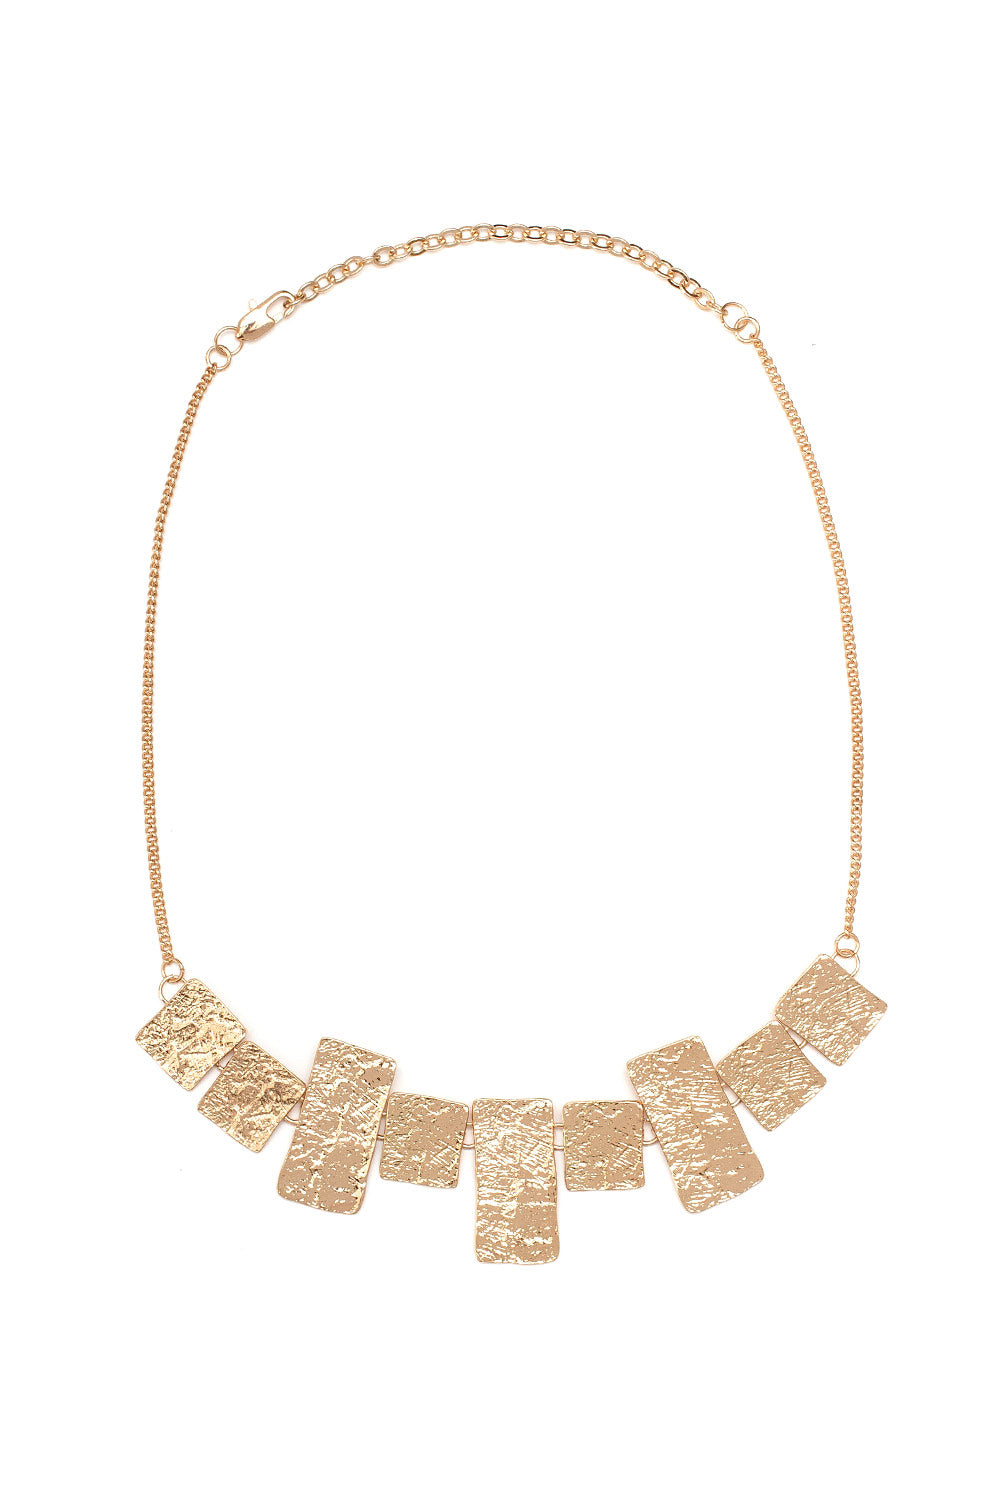 Type 3 Gold Plates Necklace